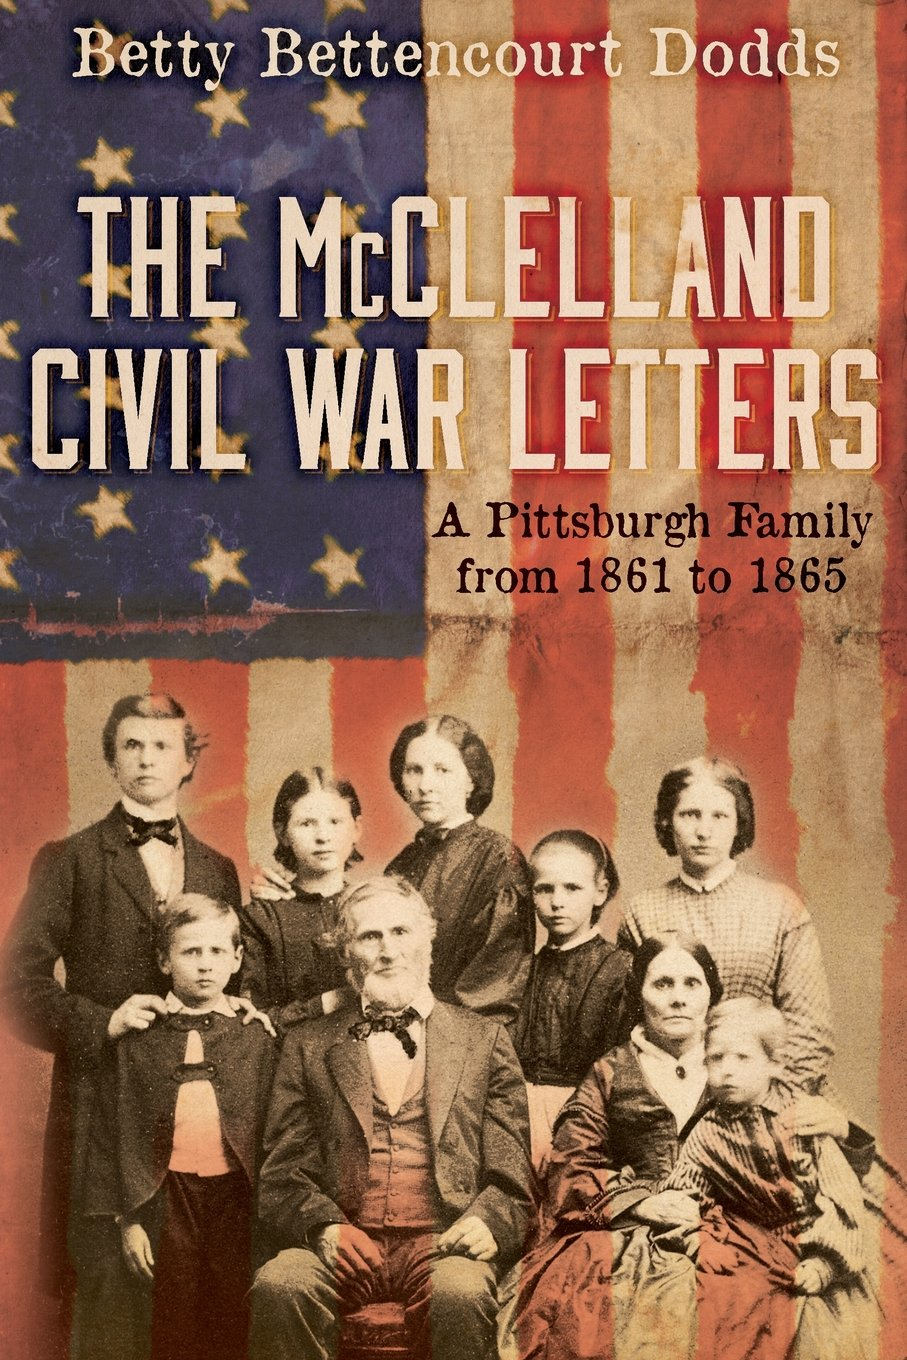 Image for The McClelland Civil War Letters: A Pittsburgh Family from 1861 to 1865